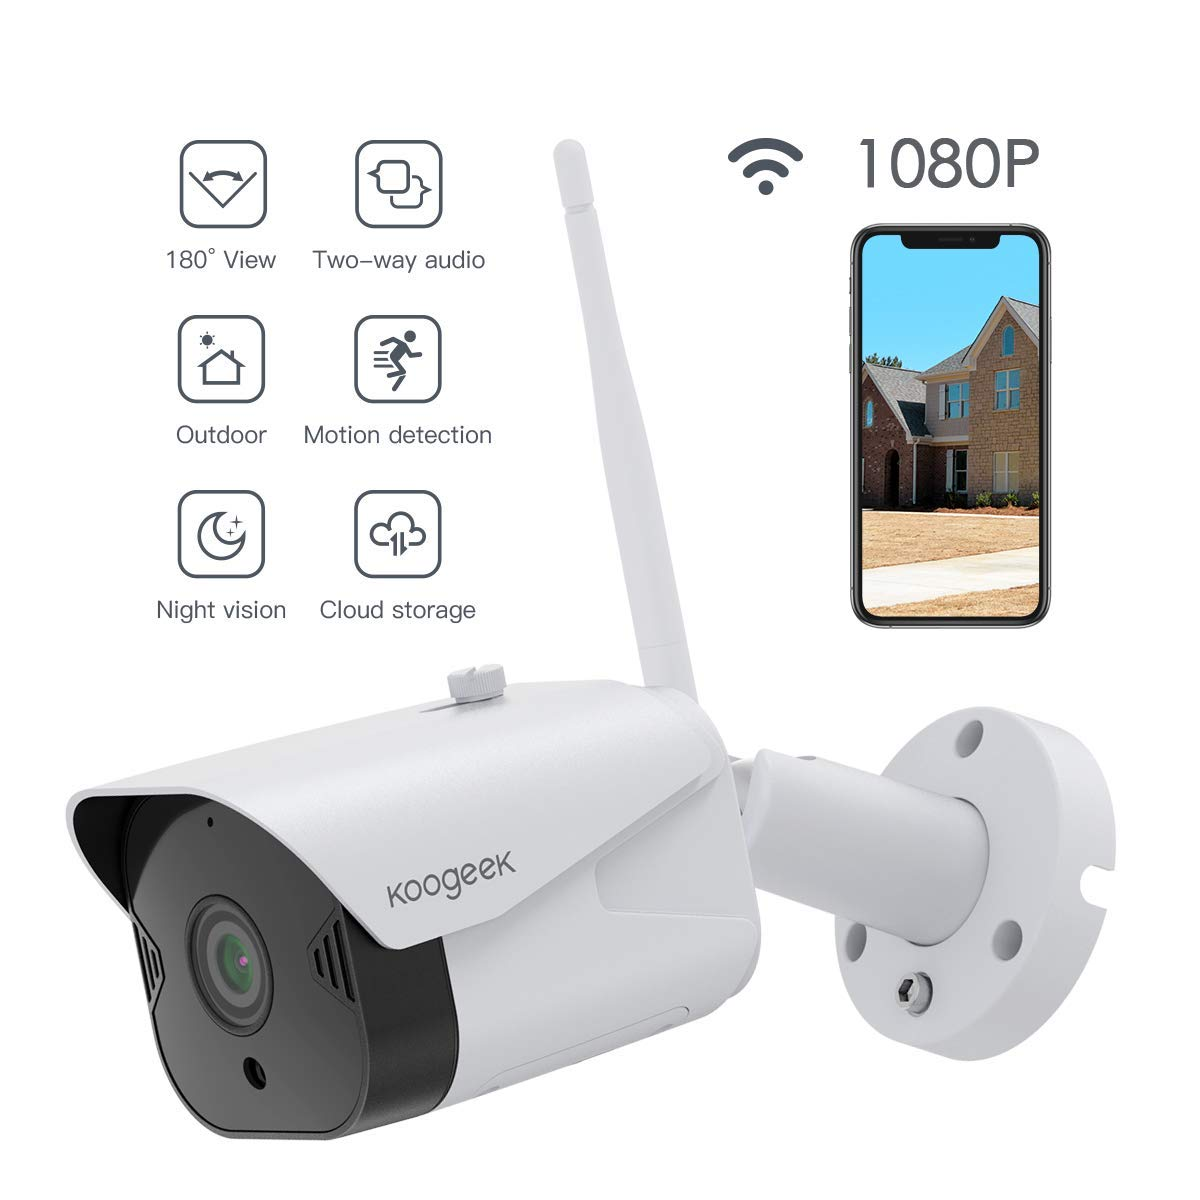 Outdoor Security Camera, Koogeek 1080P WiFi Camera Wireless Surveillance Cameras Compatible with Alexa, Bullet Camera with Two-Way Audio, IP65 Waterproof, Night Vision,Motion Detection for iOS/Android by Koogeek